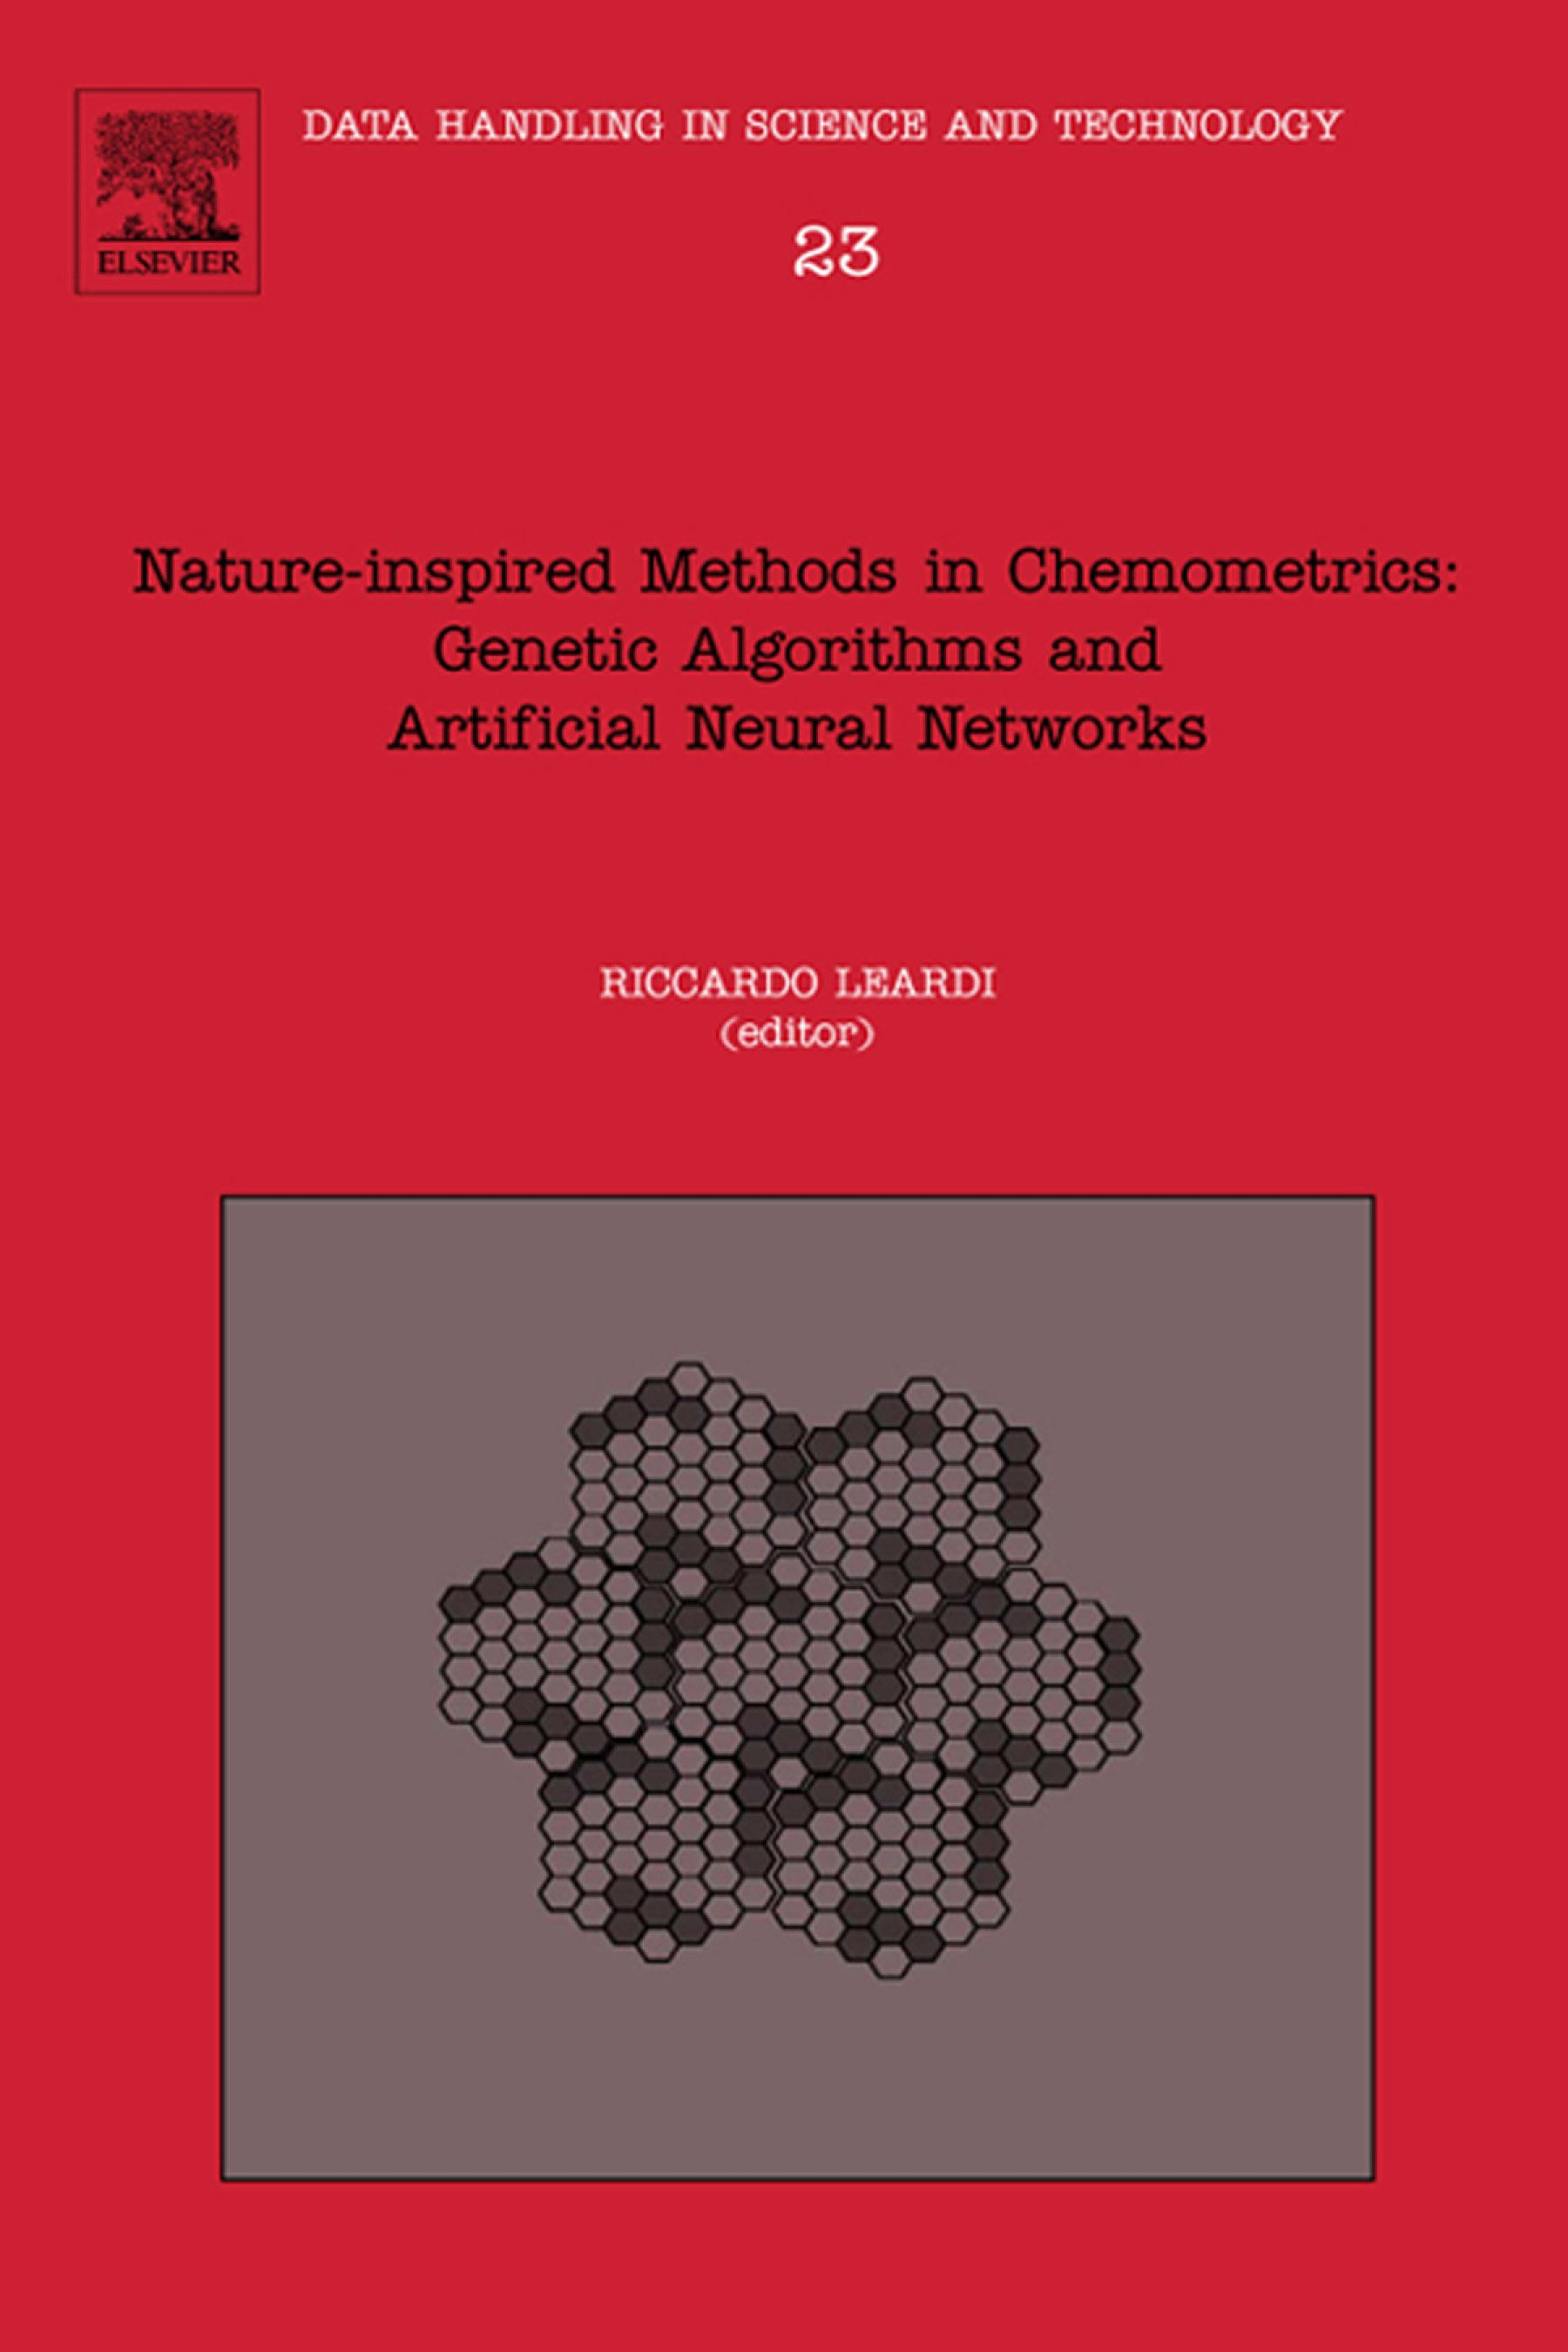 Nature-inspired methods in chemometrics: genetic algorithms and artificial neural networks: genetic algorithms and artificial neural networks EB9780080522623